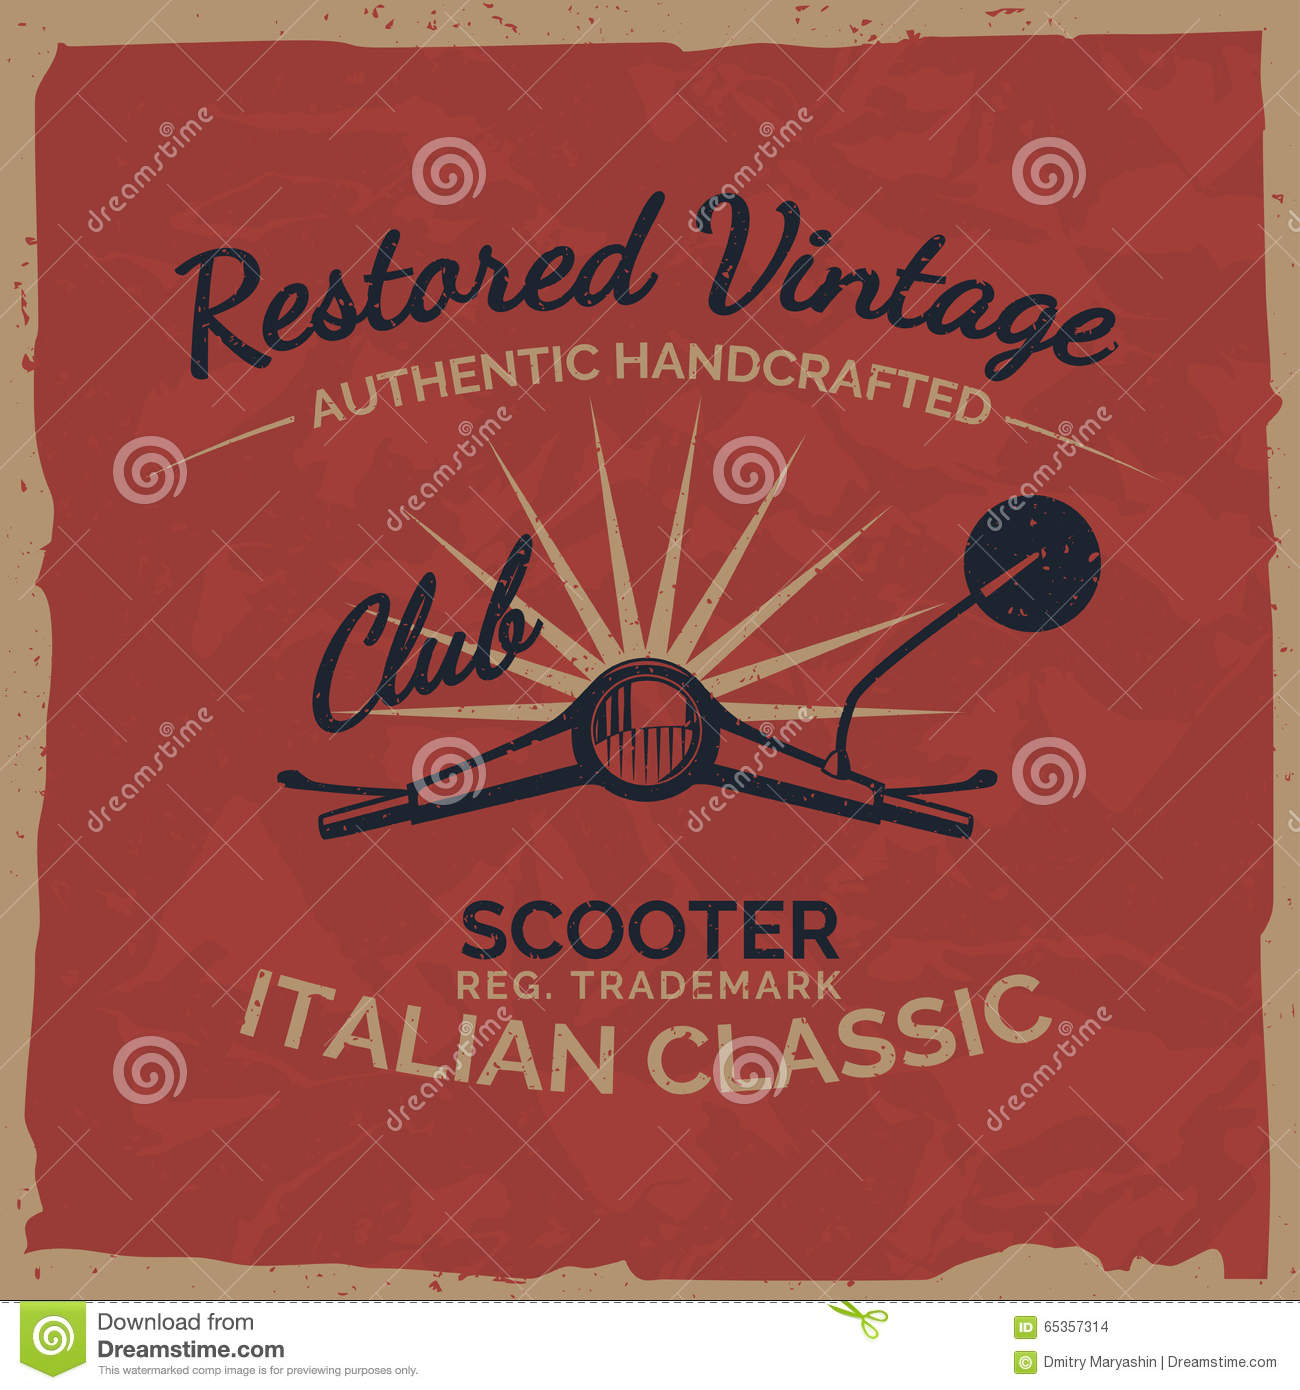 Download Vintage Italian Scooter Tee Print Design With Grunge Texture Stock Vector